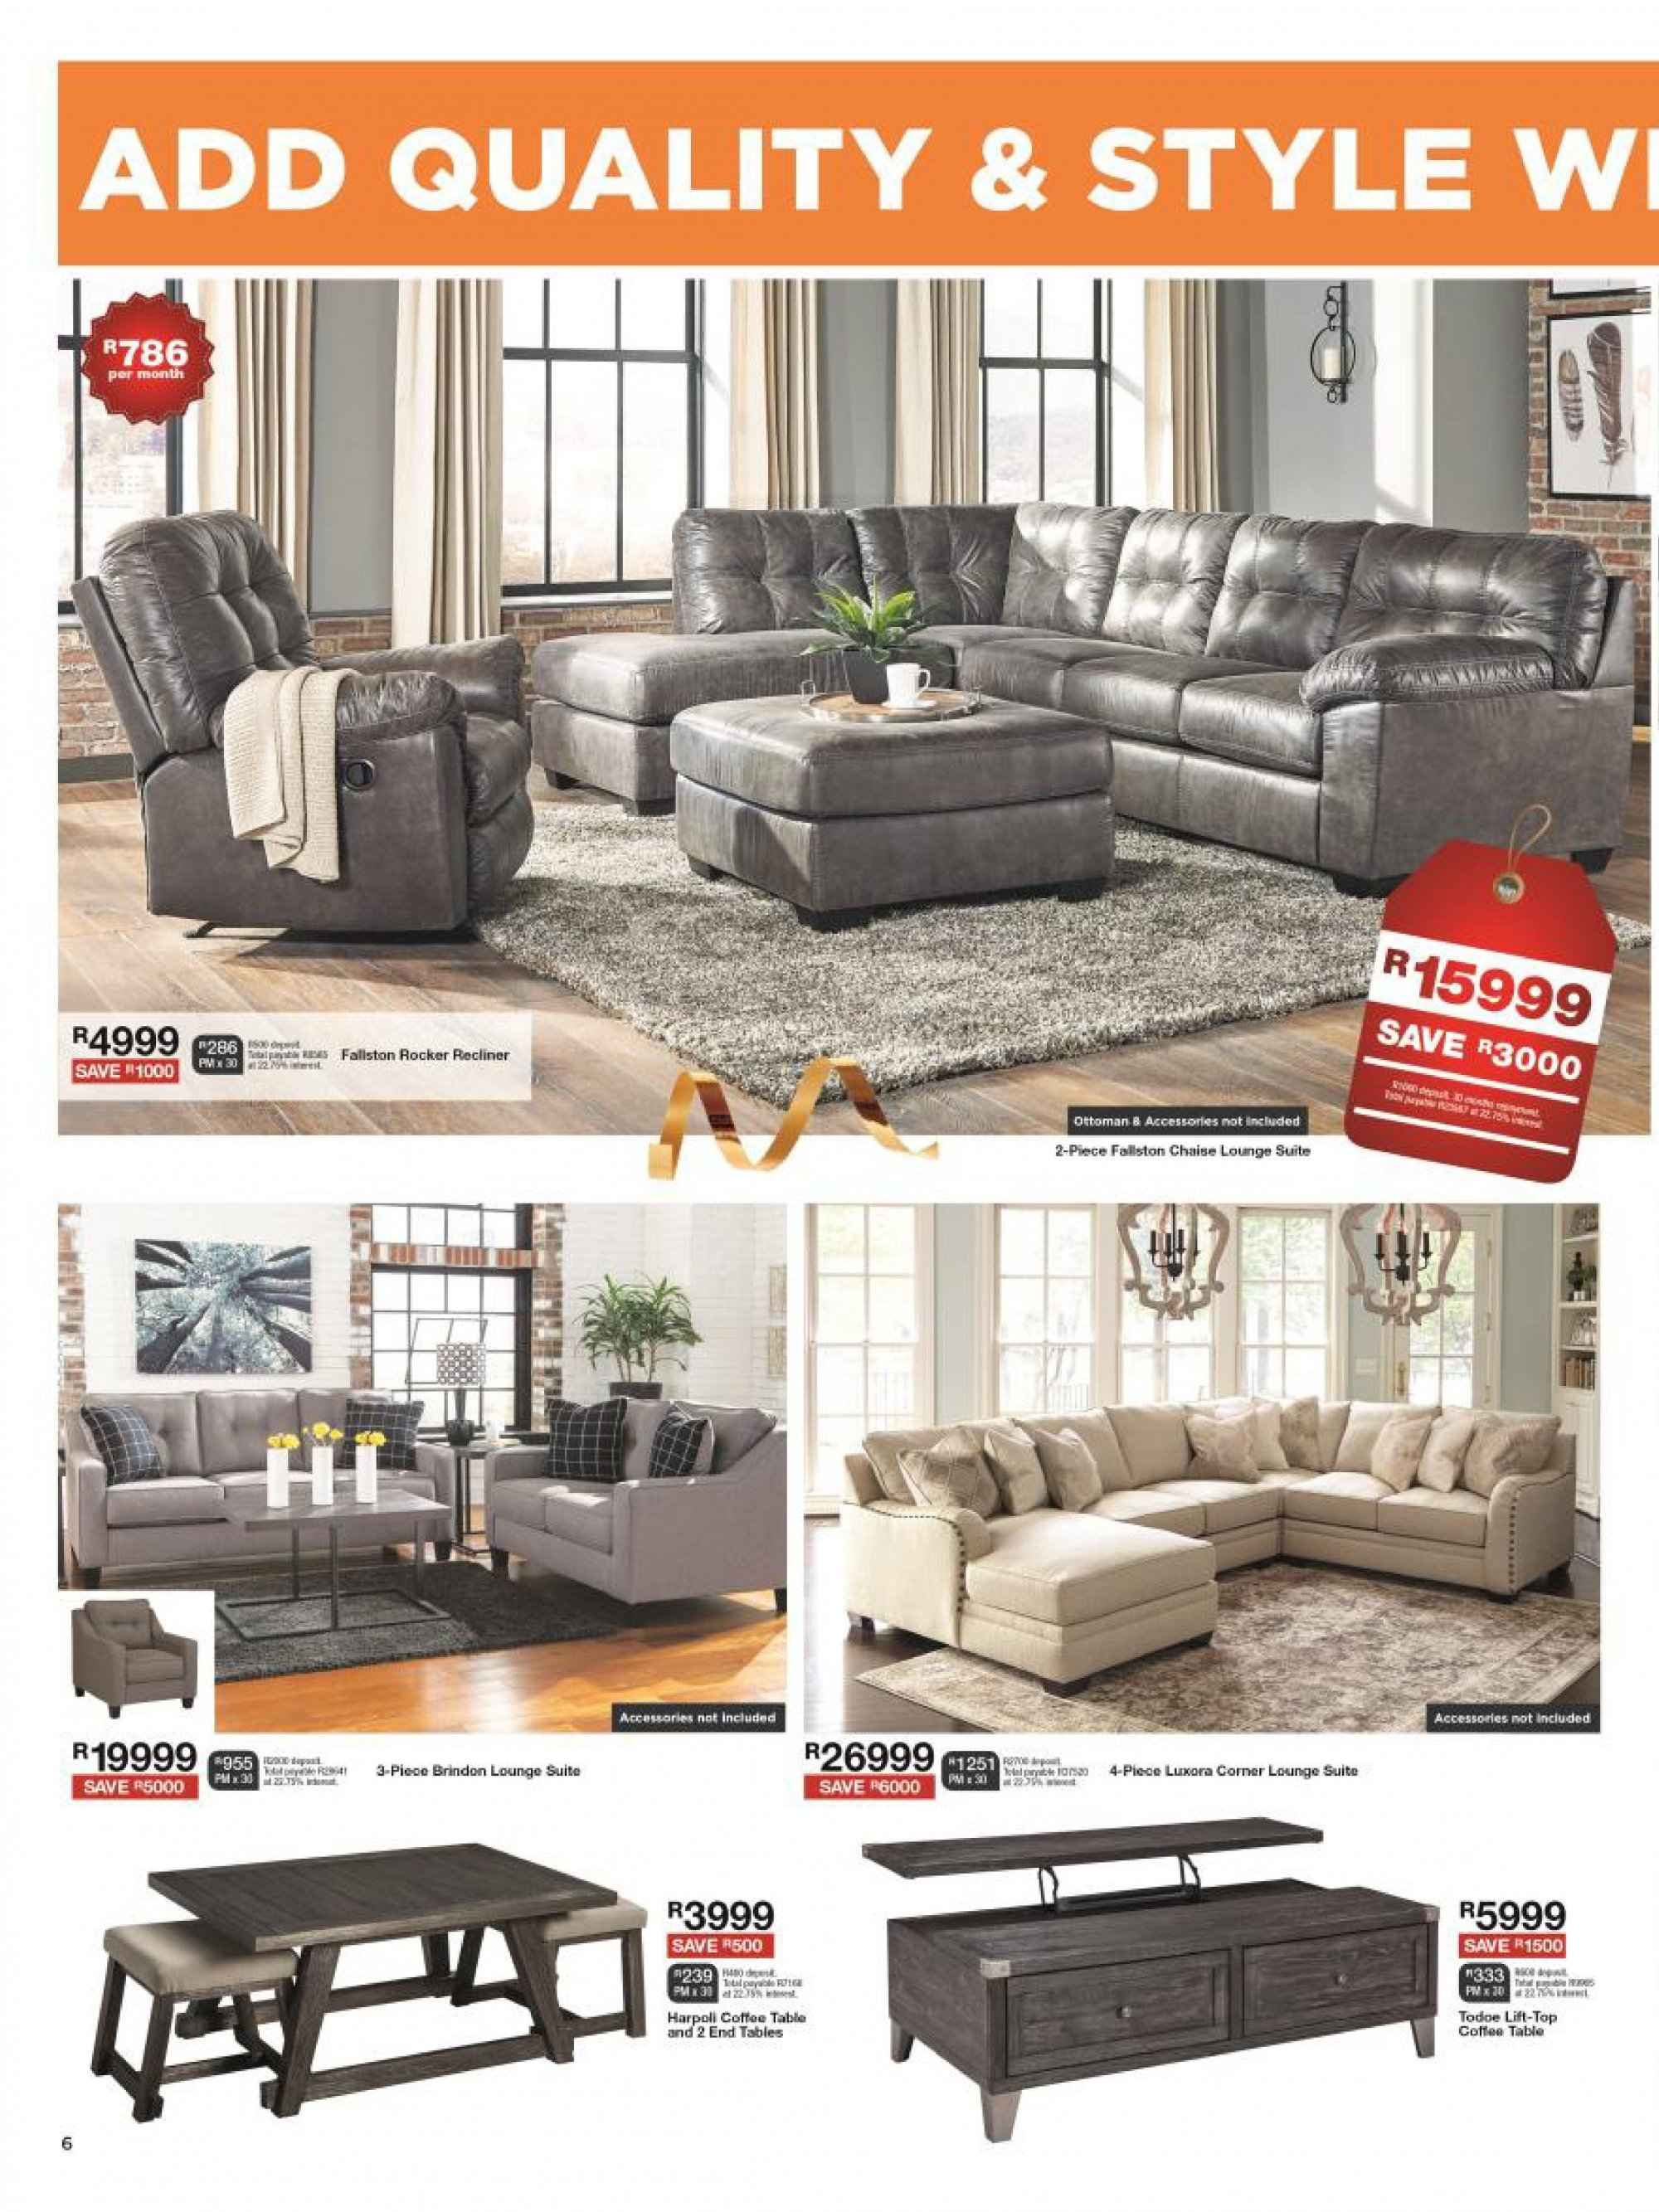 House & Home catalogue  - 12.10.2018 - 12.24.2018. Page 6.